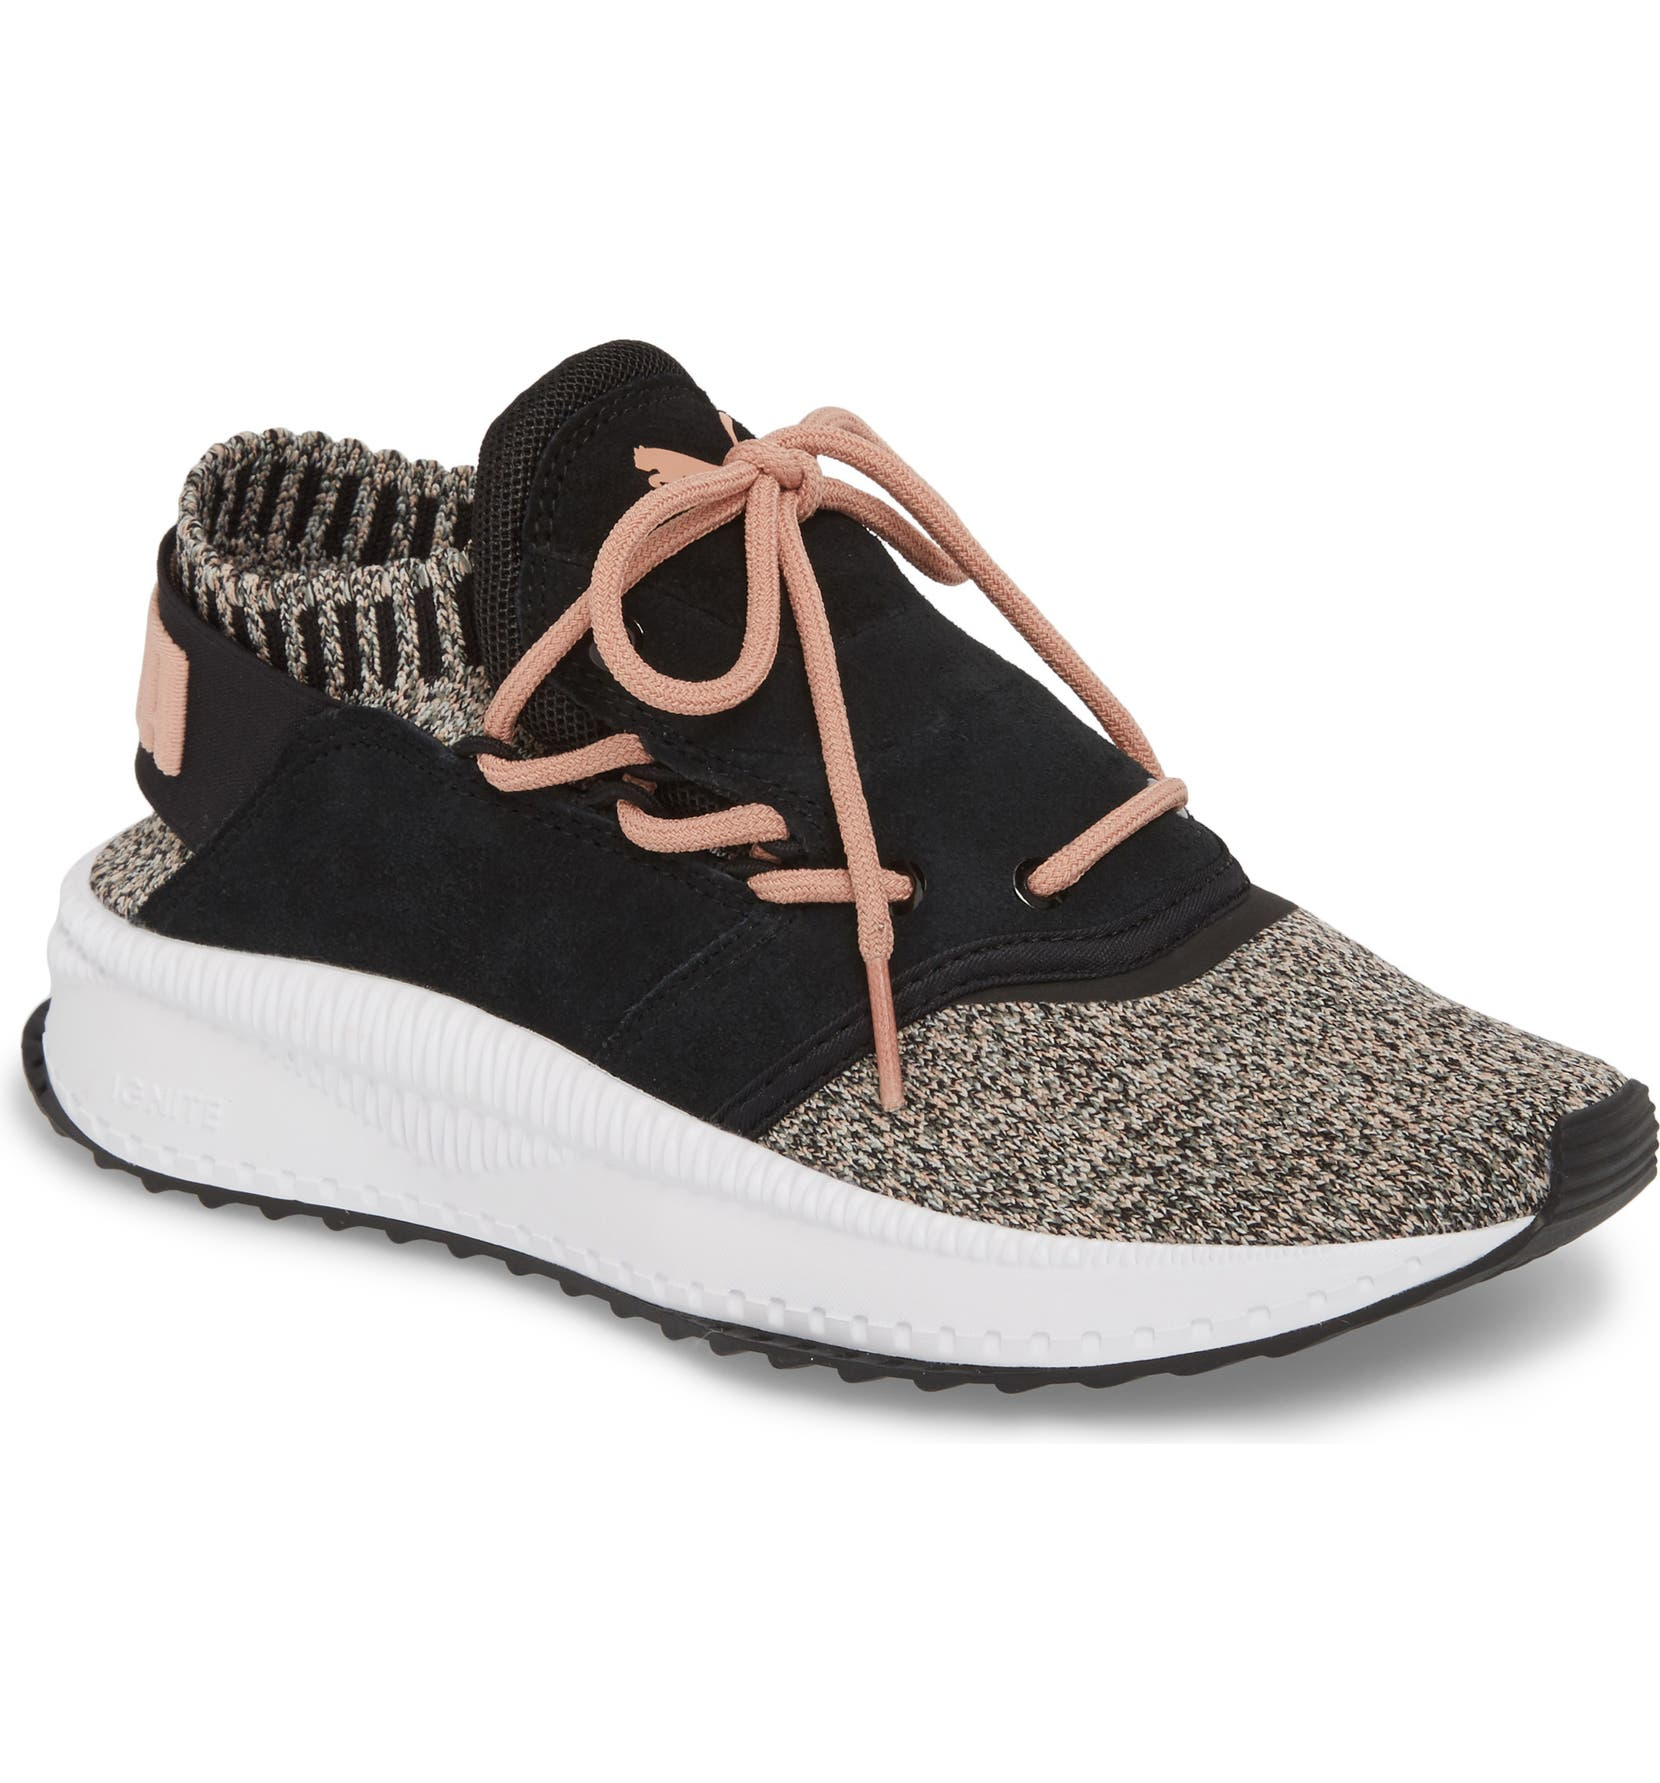 3035894edf1 PUMA Tsugi Shinsei Training Shoe (Women)